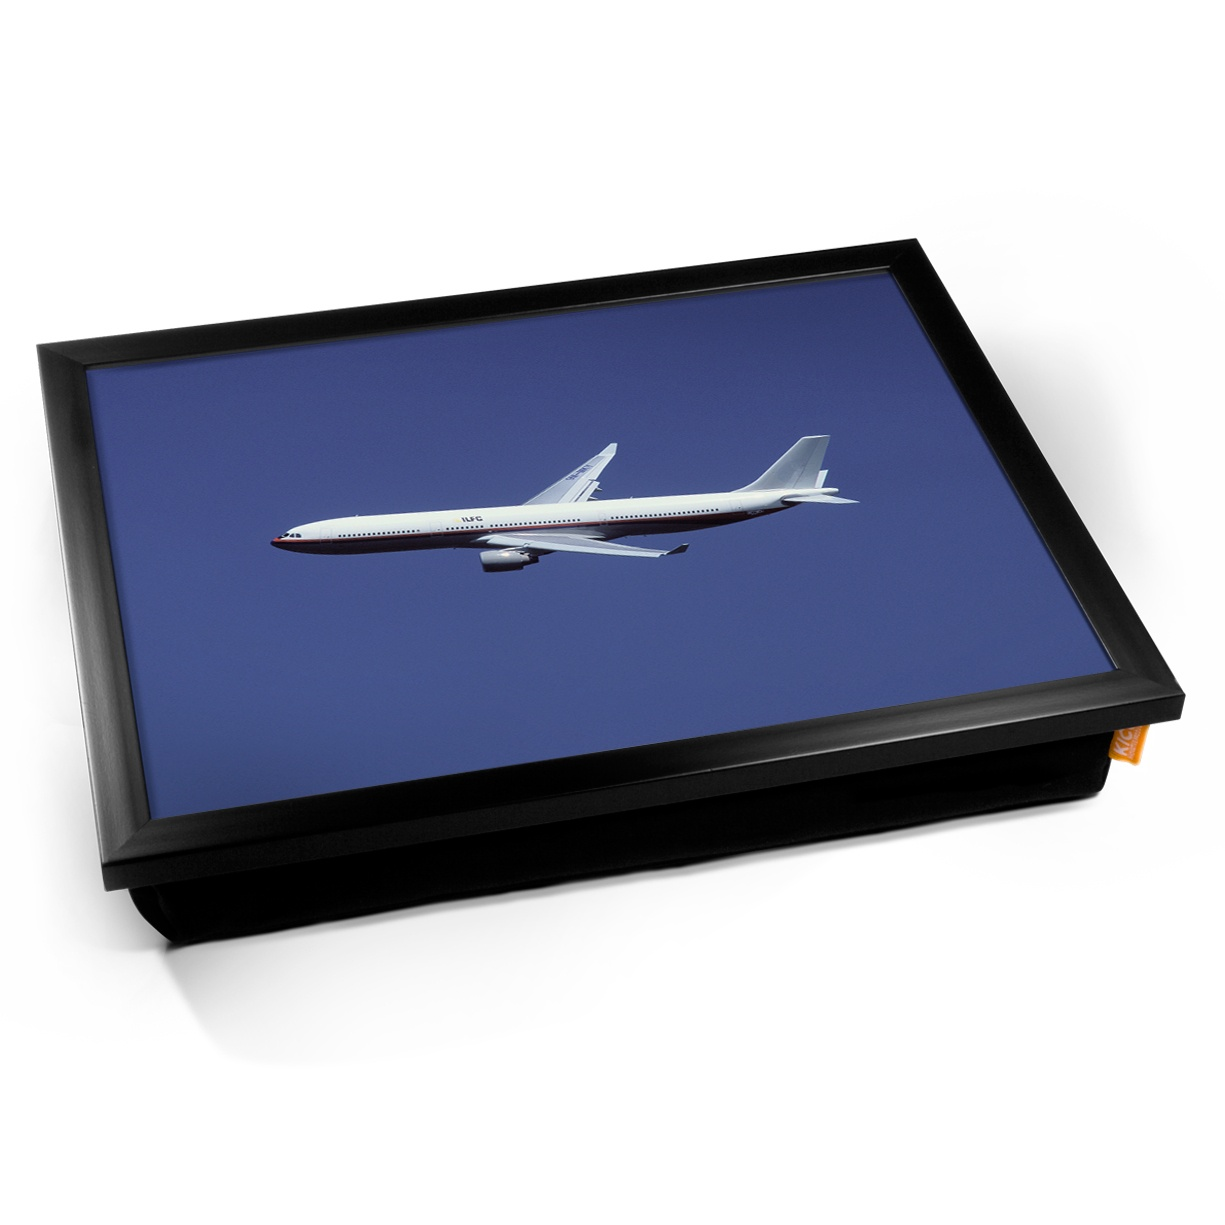 airbus a330 cushion lap tray. Black Bedroom Furniture Sets. Home Design Ideas